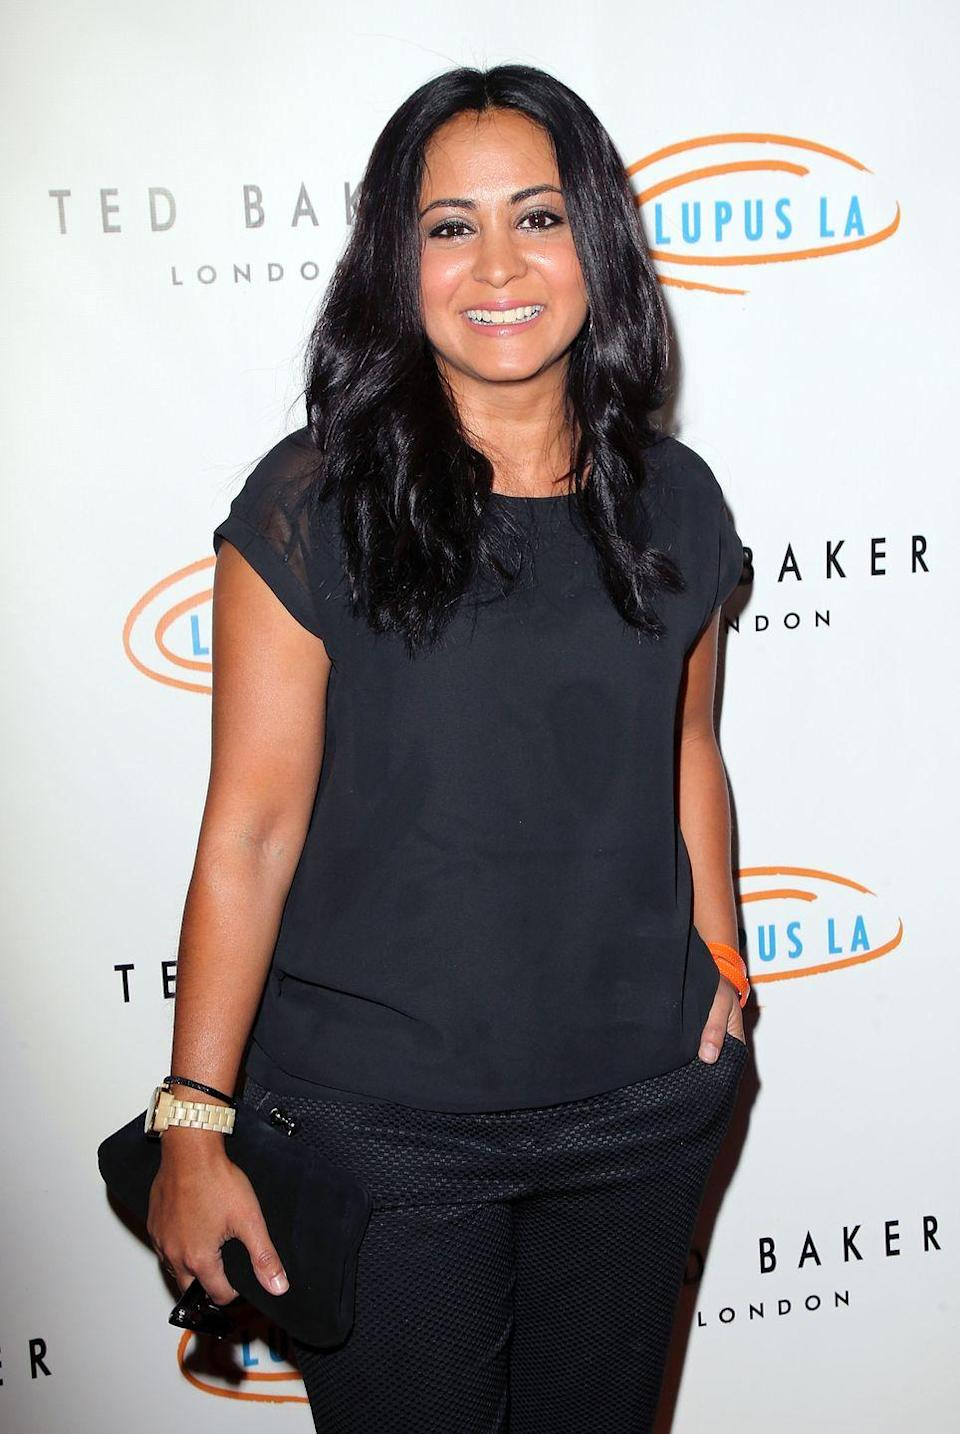 <p><strong>Release date: TBC 2021/2022</strong></p><p>Bend it Like Beckham star Parminder Nagra will star as Detective Inspector Rachita Ray in a four-part drama written by Line of Duty actress and screenwriter Maya Sondhi.</p><p>Described by ITV as 'fresh, relevant and thought-provoking', the series will follow Leicester-born Rachita Ray, a police officer who takes on a case that forces her to confront a lifelong personal conflict between her British identity and her South Asian heritage. </p><p>Jed Mercurio will serve as executive producer. </p><p>ITV's synopsis continues: 'Rachita achieves the promotion she's been waiting for when she's asked to join a homicide investigation. However, on her first day she's told the murder to which she's been assigned is a 'Culturally Specific Homicide.' </p><p>'Rachita's heart sinks – she suspects she's a 'token appointment', chosen for her ethnicity rather than her ability. Never one to shy away from a challenge, Rachita sticks to the case, determined to both find the killer and call out the obvious biases her colleagues are bringing to the investigation. And it's far from easy. The case isn't a run-of-the-mill murder; it involves delving deep into the dangerous world of organised crime.</p><p>'Rachita is more than up for the task, but what she didn't count on is what this case stirs up inside her; the realisation that she's been burying a personal identity crisis her whole life. Truth is, she's had to work twice as hard as everyone else. It's not that she doesn't want to be Indian, it's just that it would have been easier if she were white.'<br></p>